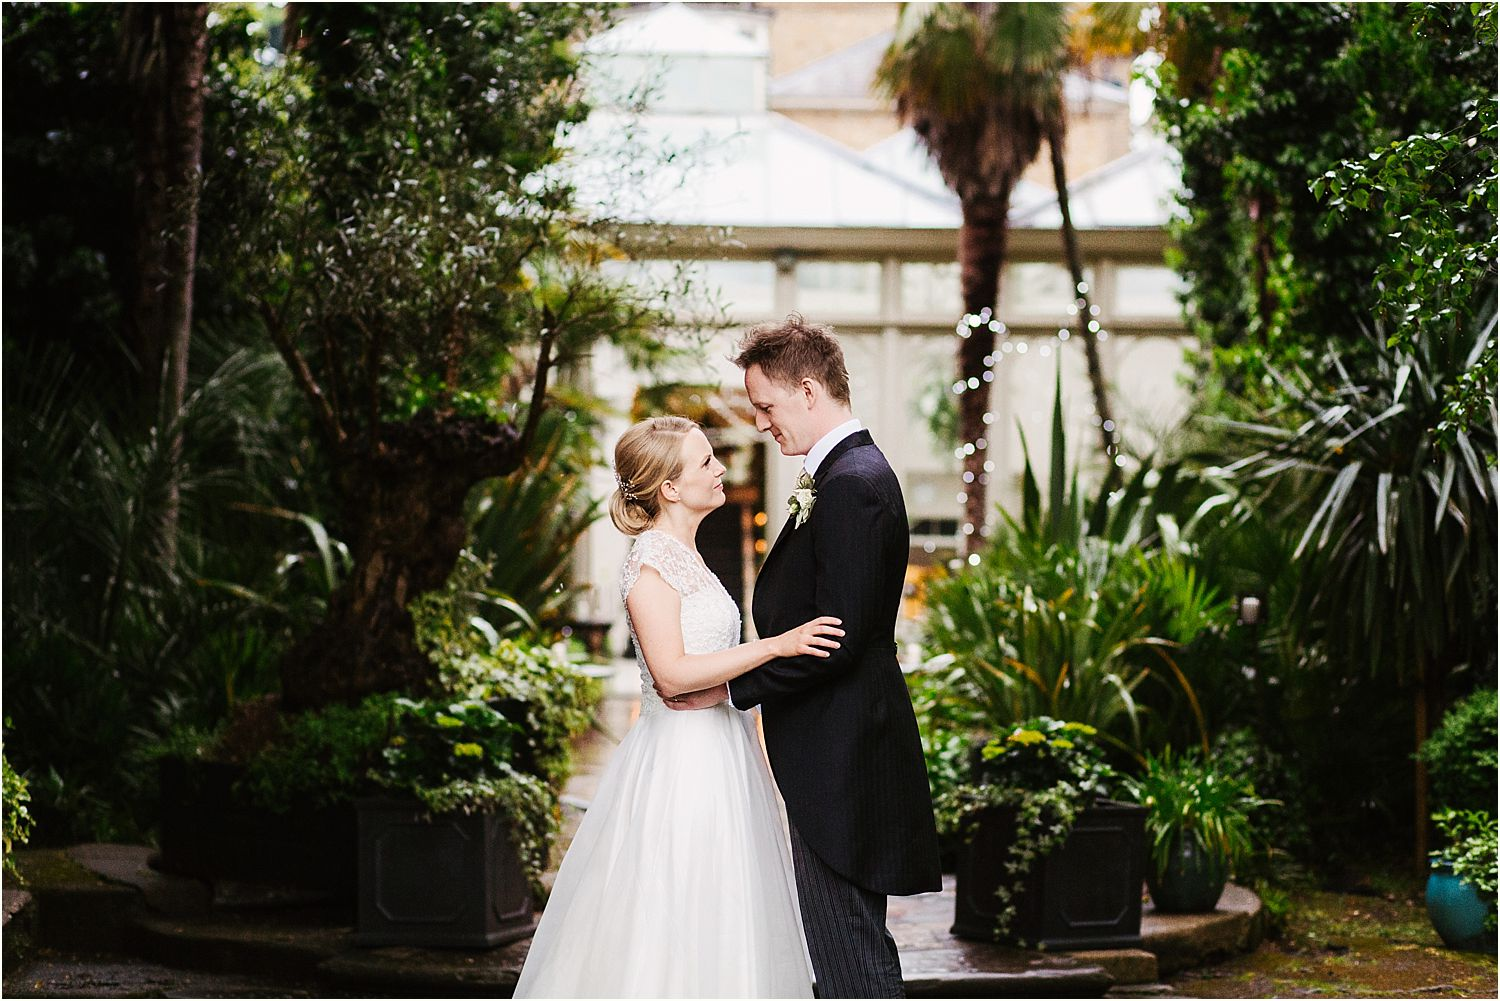 Bride and groom together in gardens at Hampton Court House wedding venue, Surrey